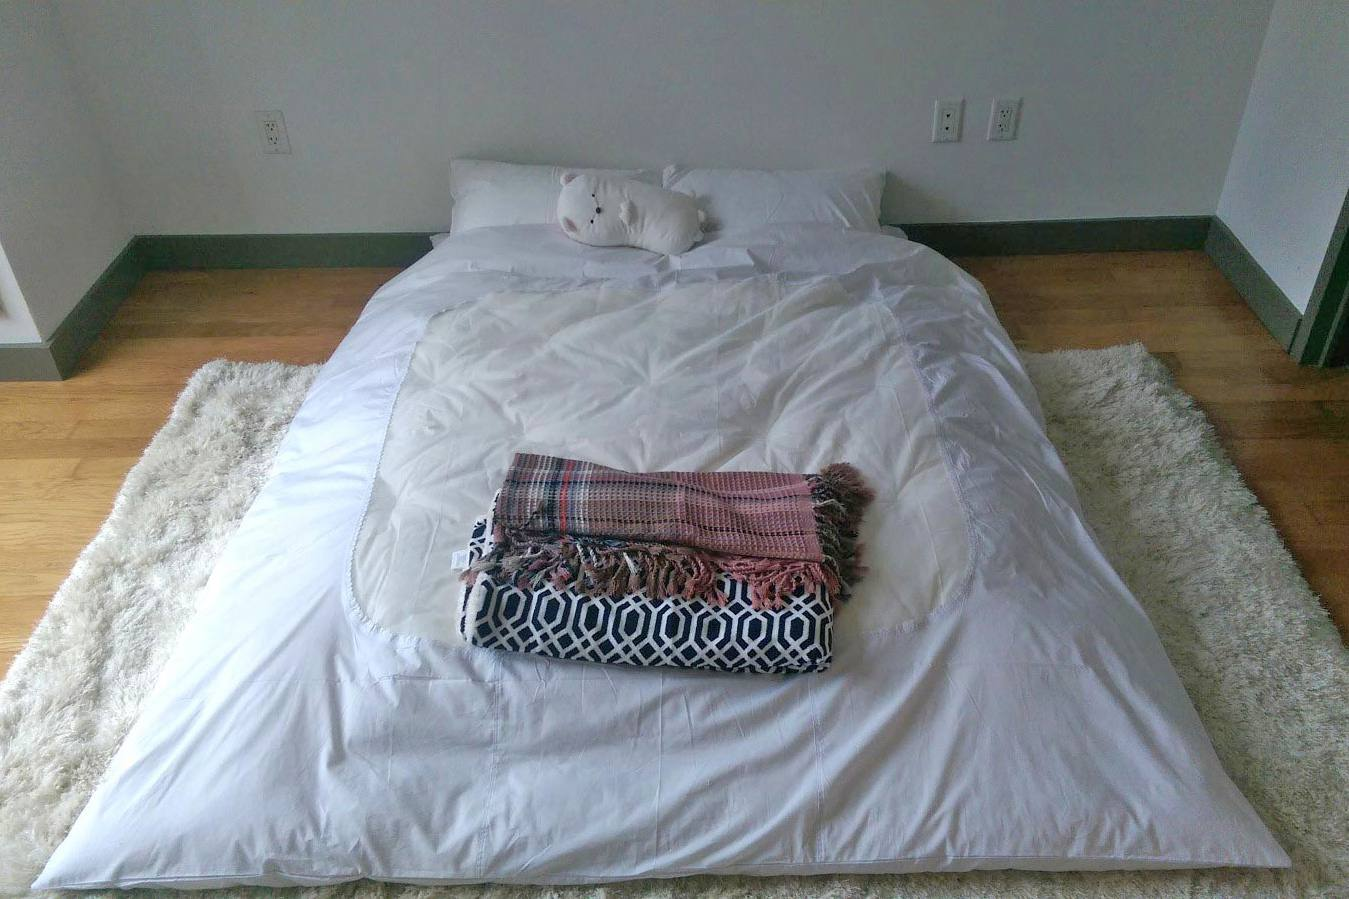 size comfortable is sleeping to your mattress comfy how a floor help cot of bed frames decorate comforter low on full comfortably back the ideas sleep make close ground bedroom